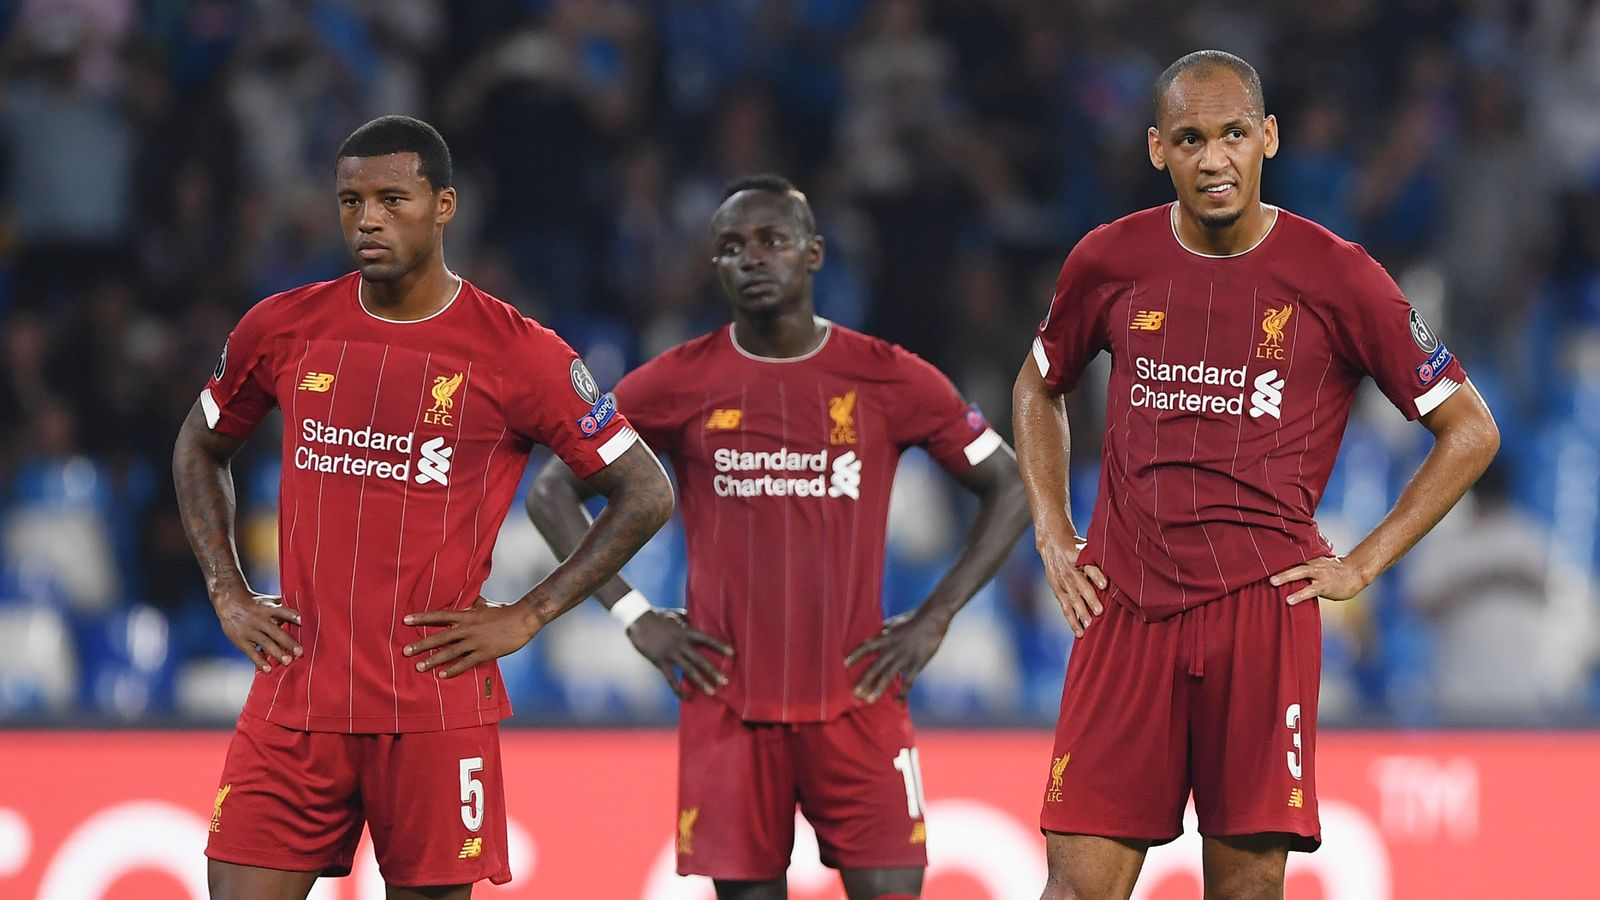 Escorts in liverpool players